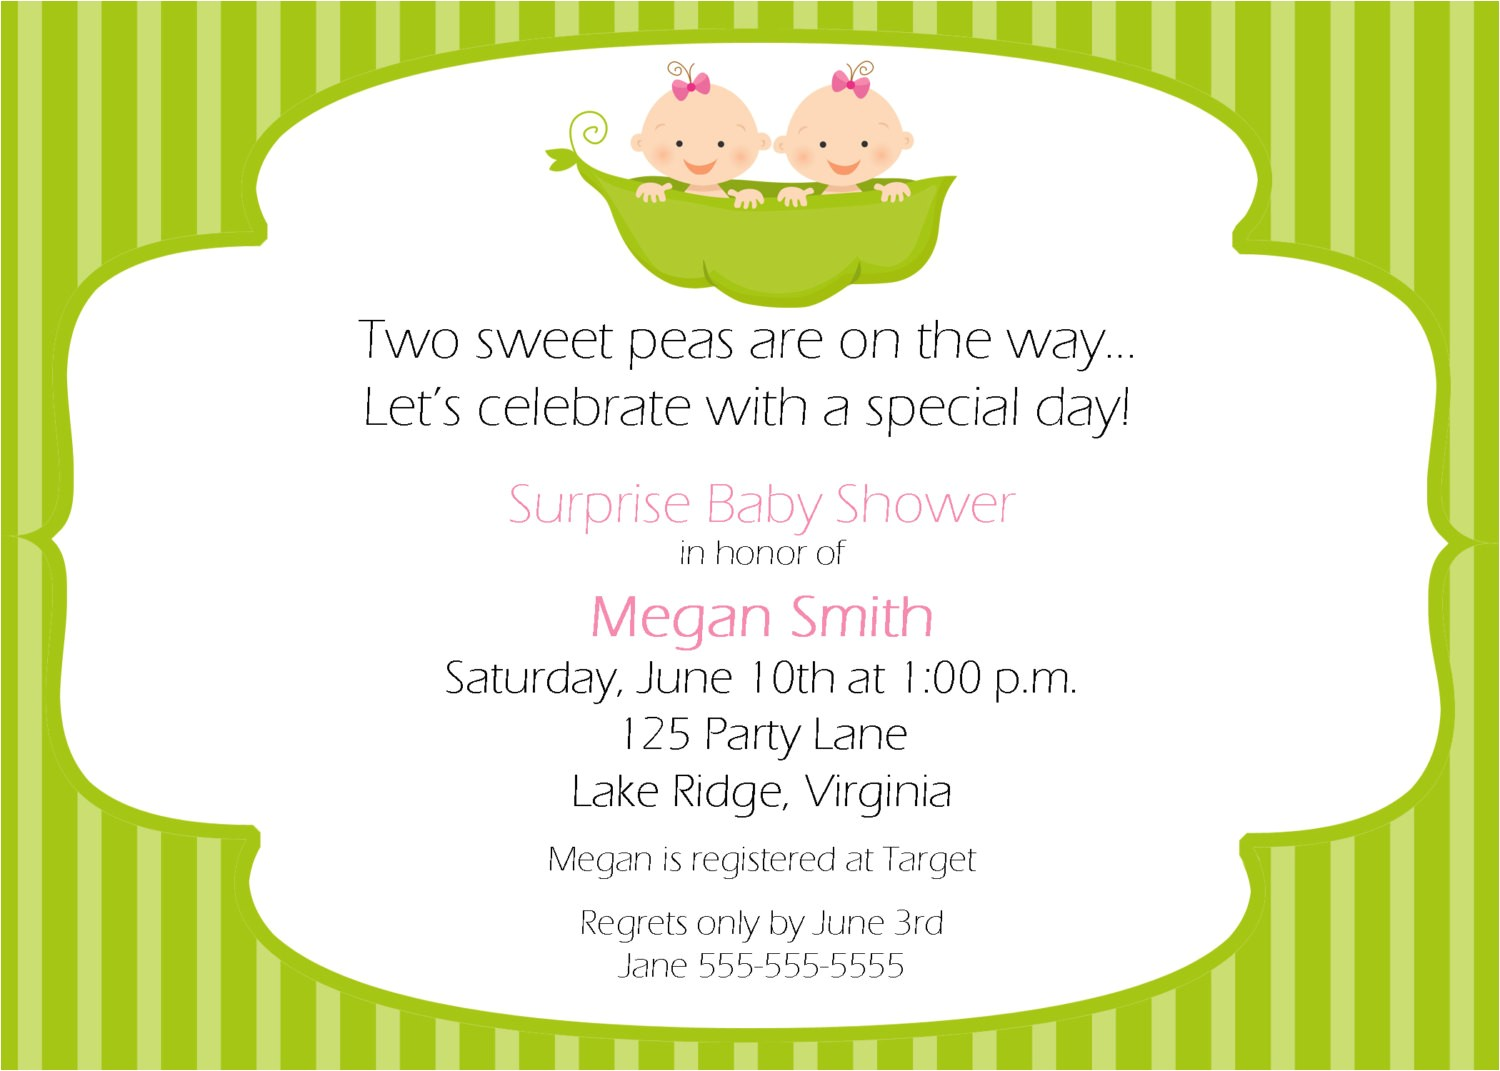 Two Peas In A Pod Baby Shower Invitations for Twins Two Peas In A Pod Baby Shower theme Ideas for Twin